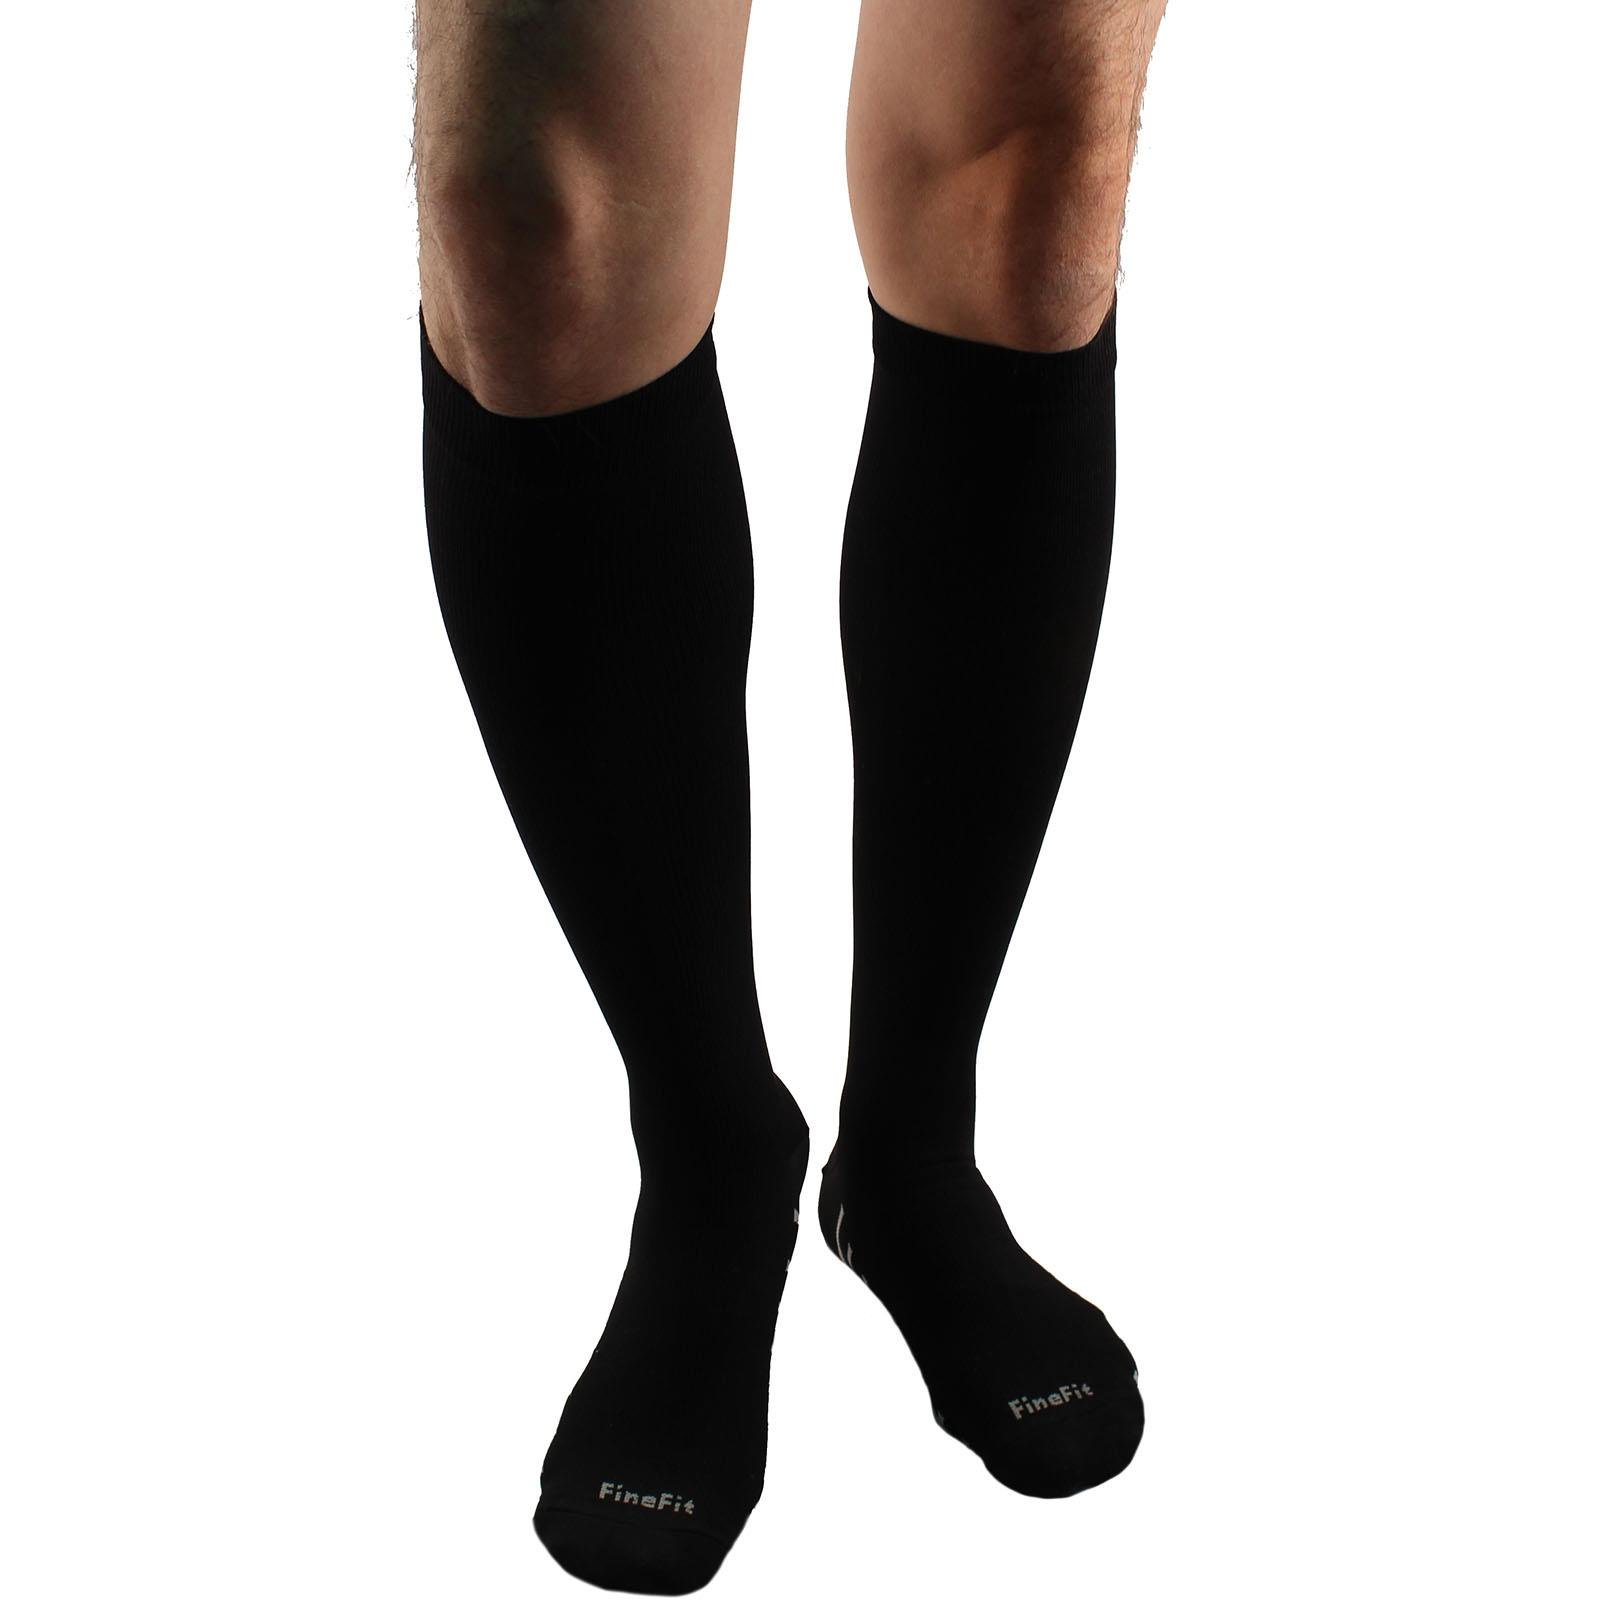 Unisex Everday Fatigue Blood Flow Compression Comfy Socks 8-15mm HG L/XL